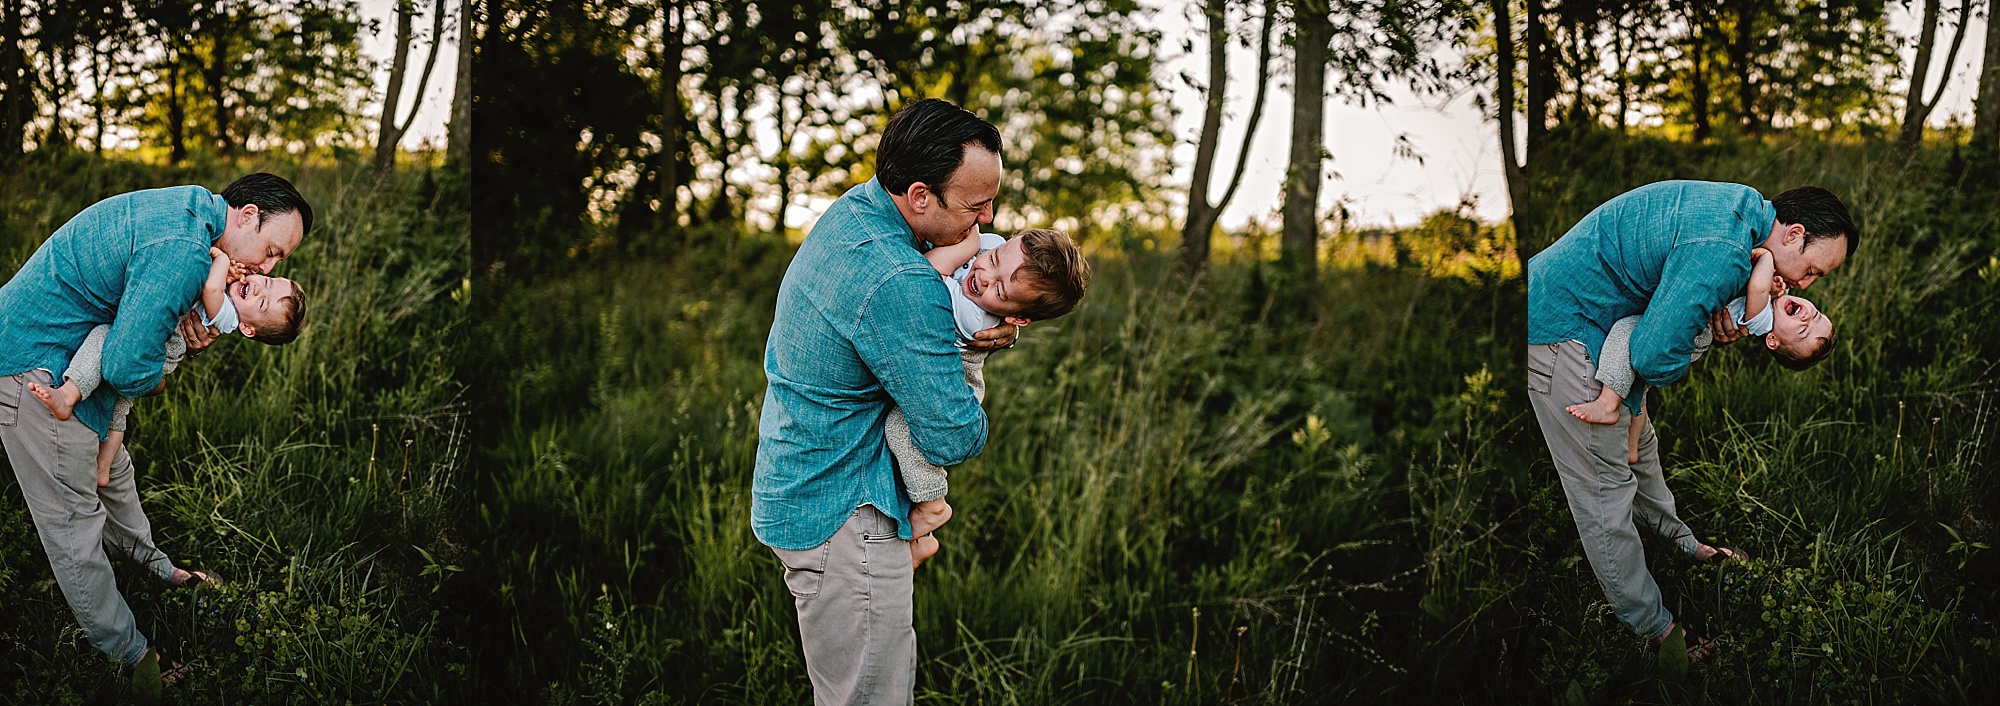 lauren-grayson-photography-cleveland-ohio-photographer-summer-outdoor-fields-family-child-baby-photo-session_0531.jpg